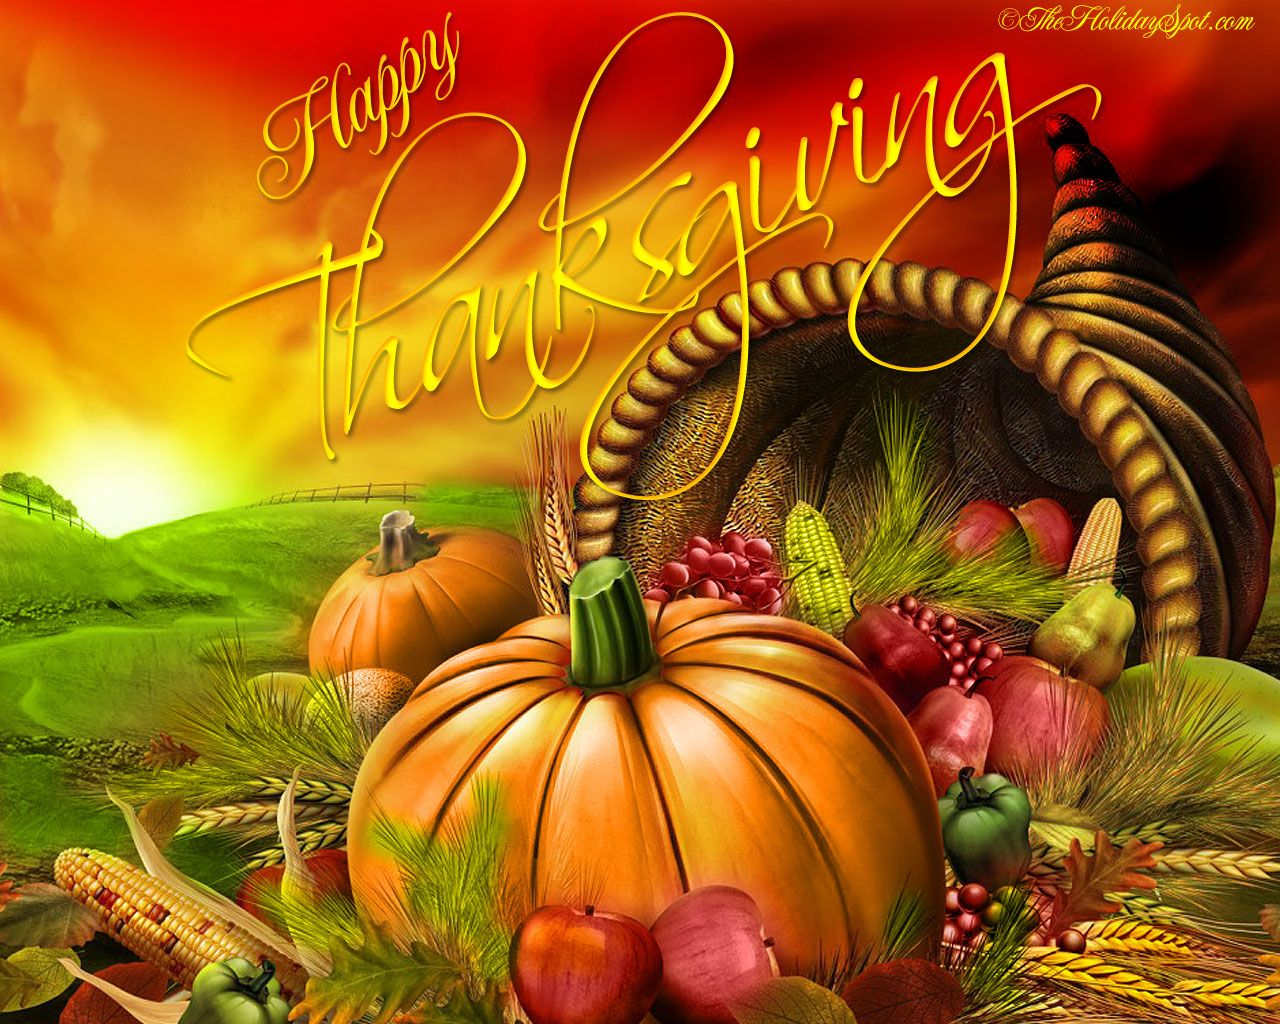 Happy thanksgiving thanksgiving happy thanksgiving and holidays i wanted to wish you and your family a very happy thanksgiving from thrifty momma ramblings today is a day to count your blessing and be thankful for all kristyandbryce Image collections